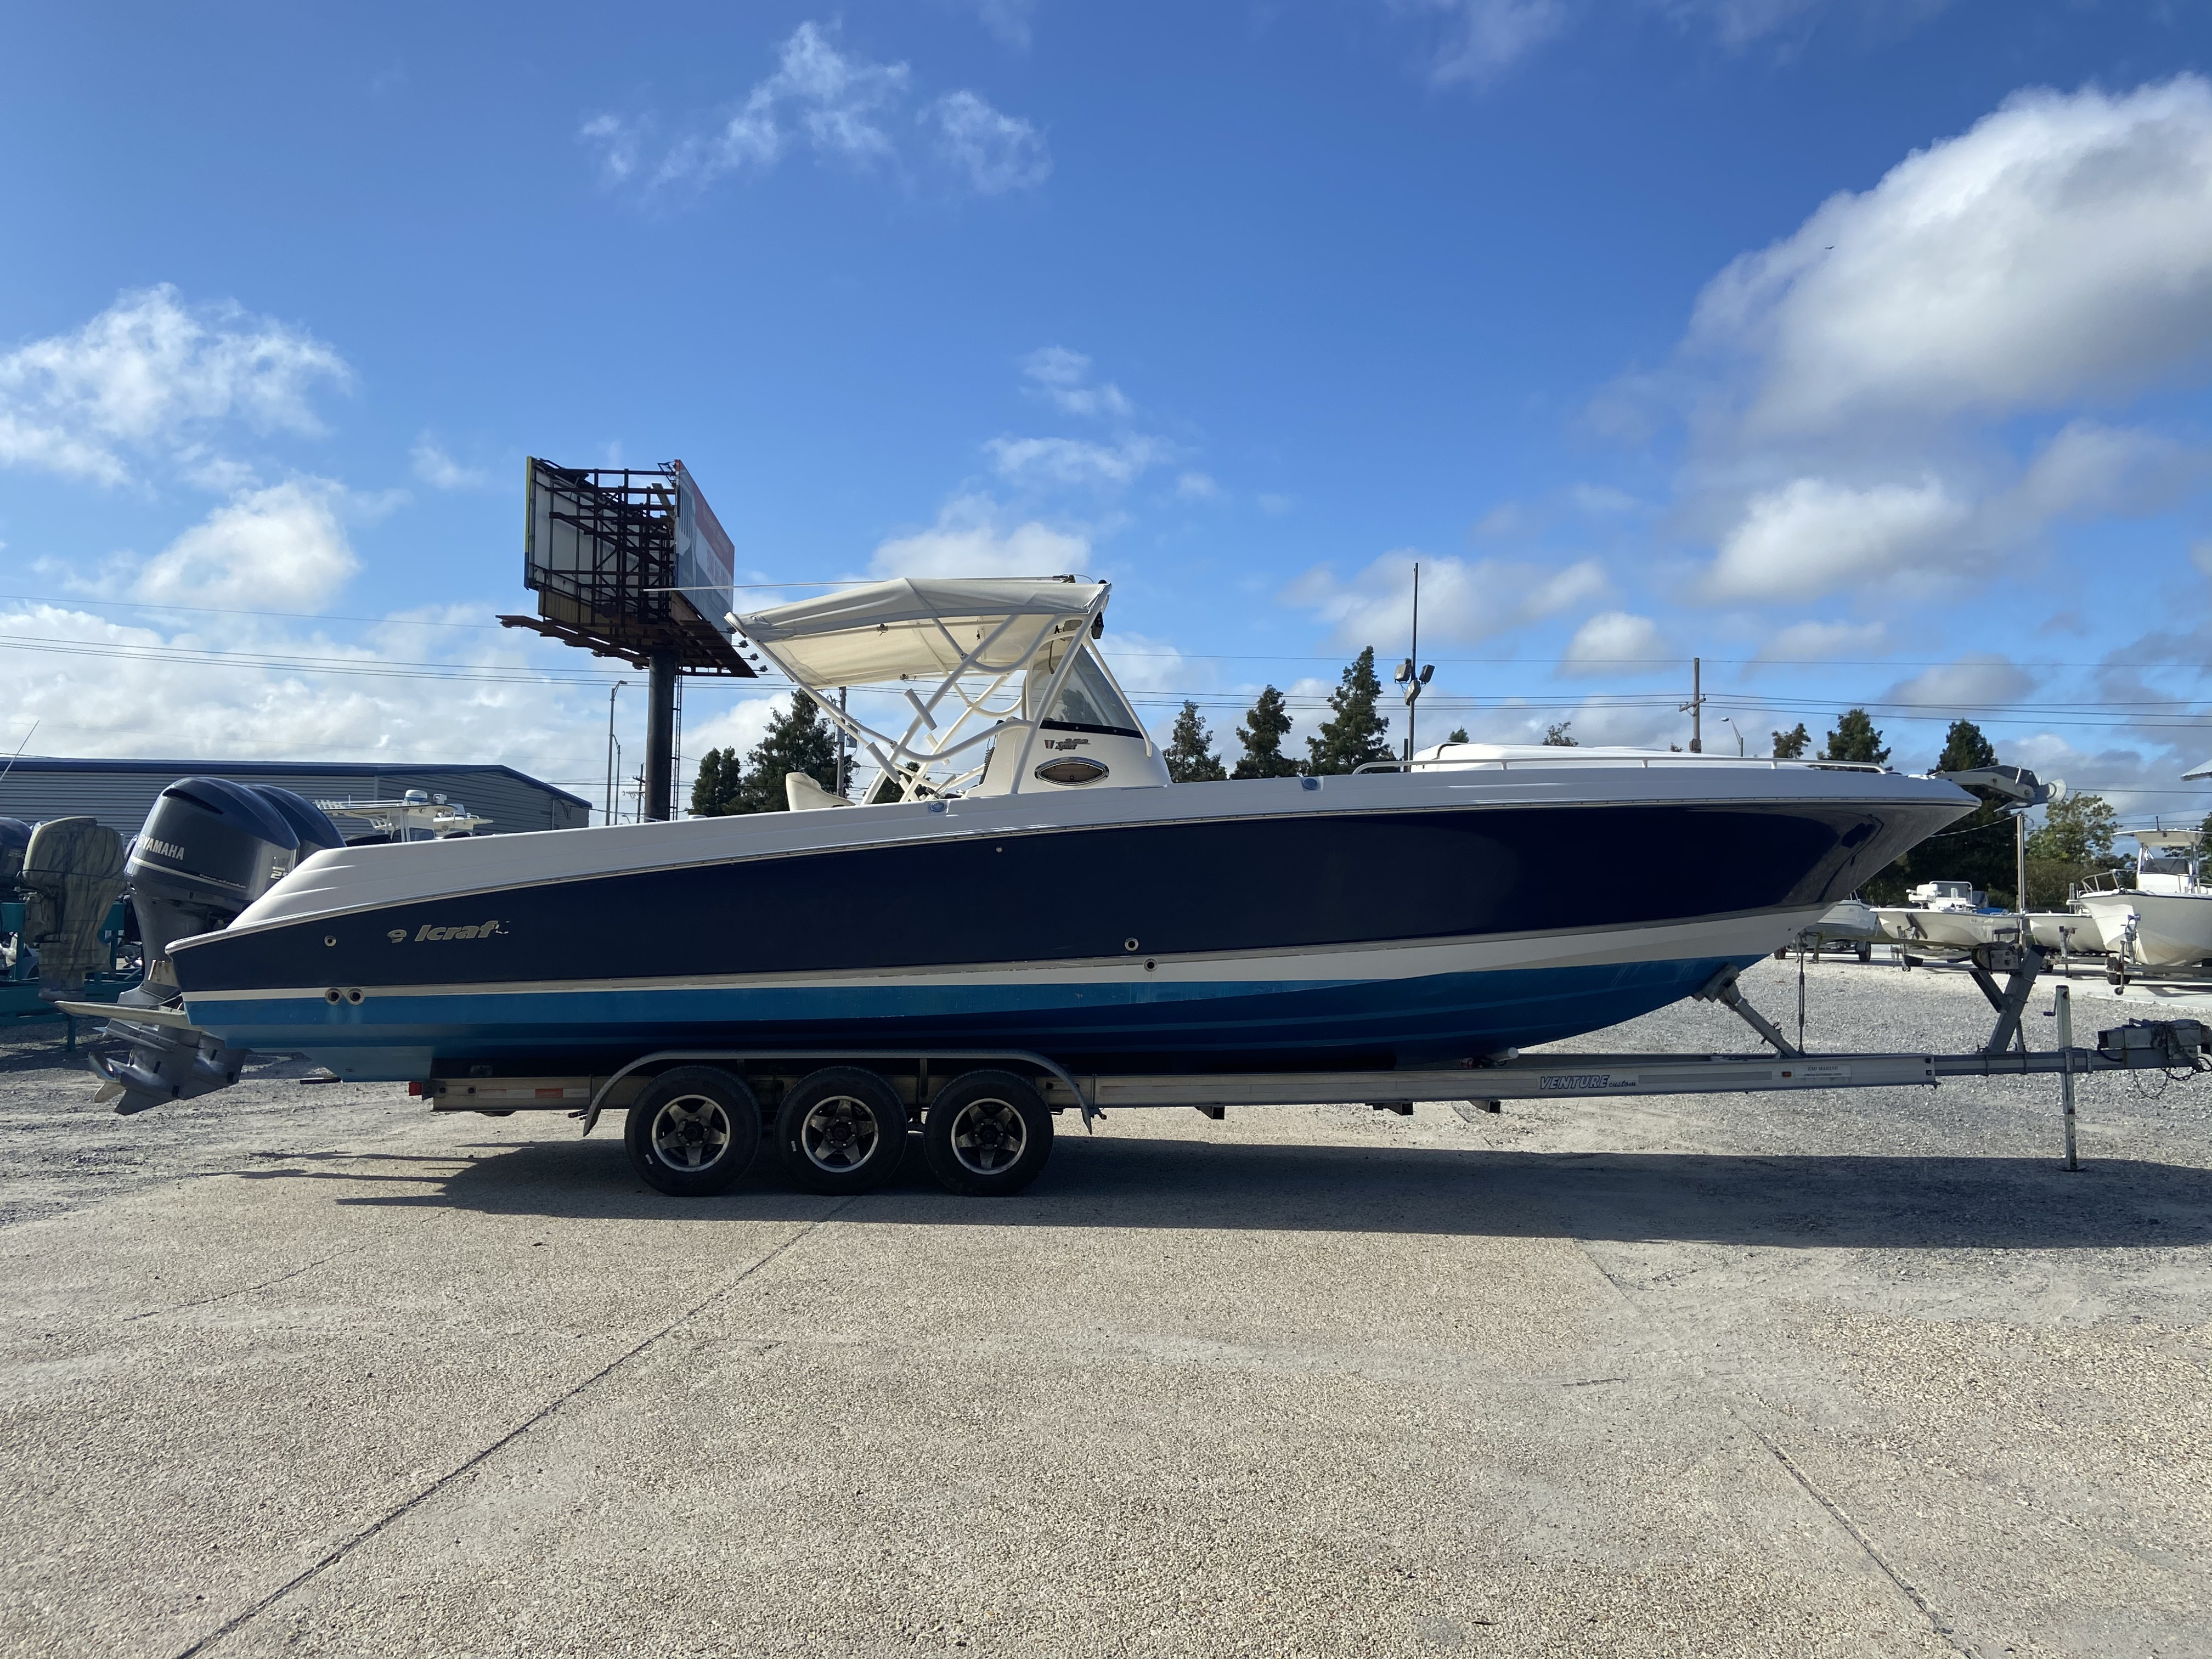 2006 Wellcraft boat for sale, model of the boat is 352 Sport & Image # 11 of 27